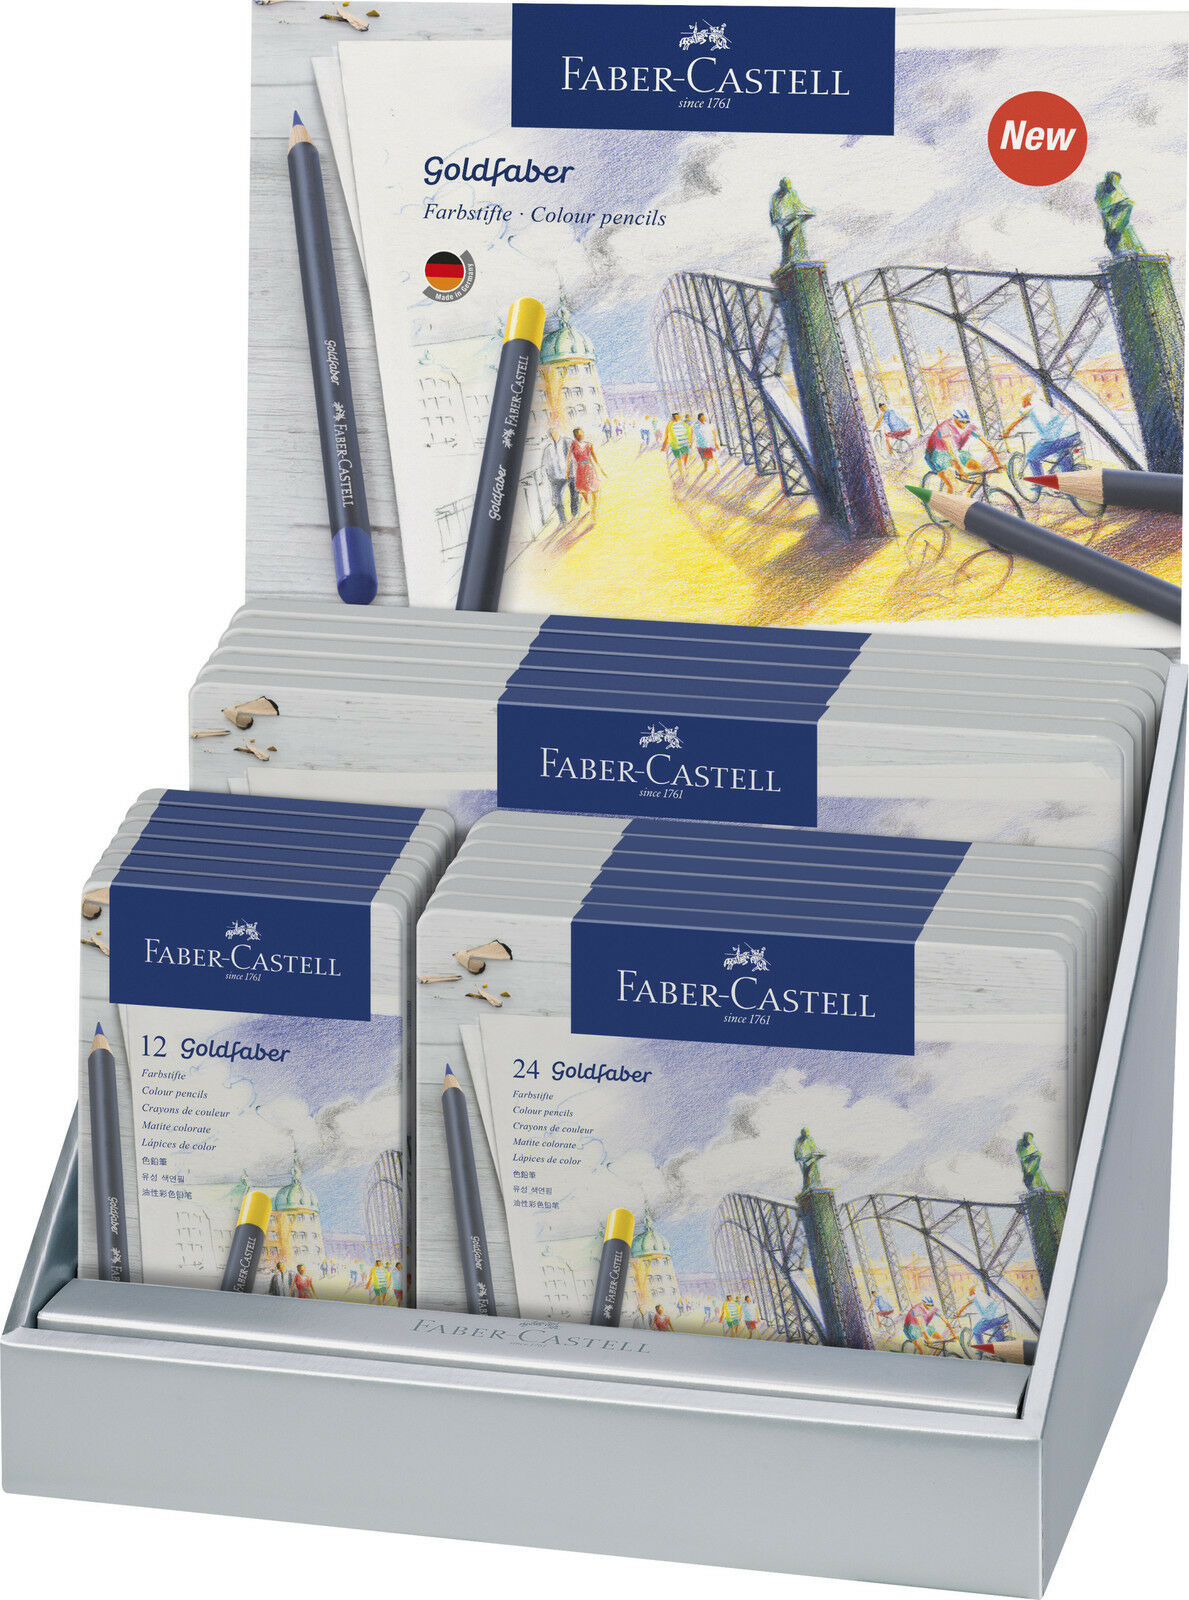 Faber Castell Farbstifte Goldfaber Wasserfest - permanent | Up-to-date-styling